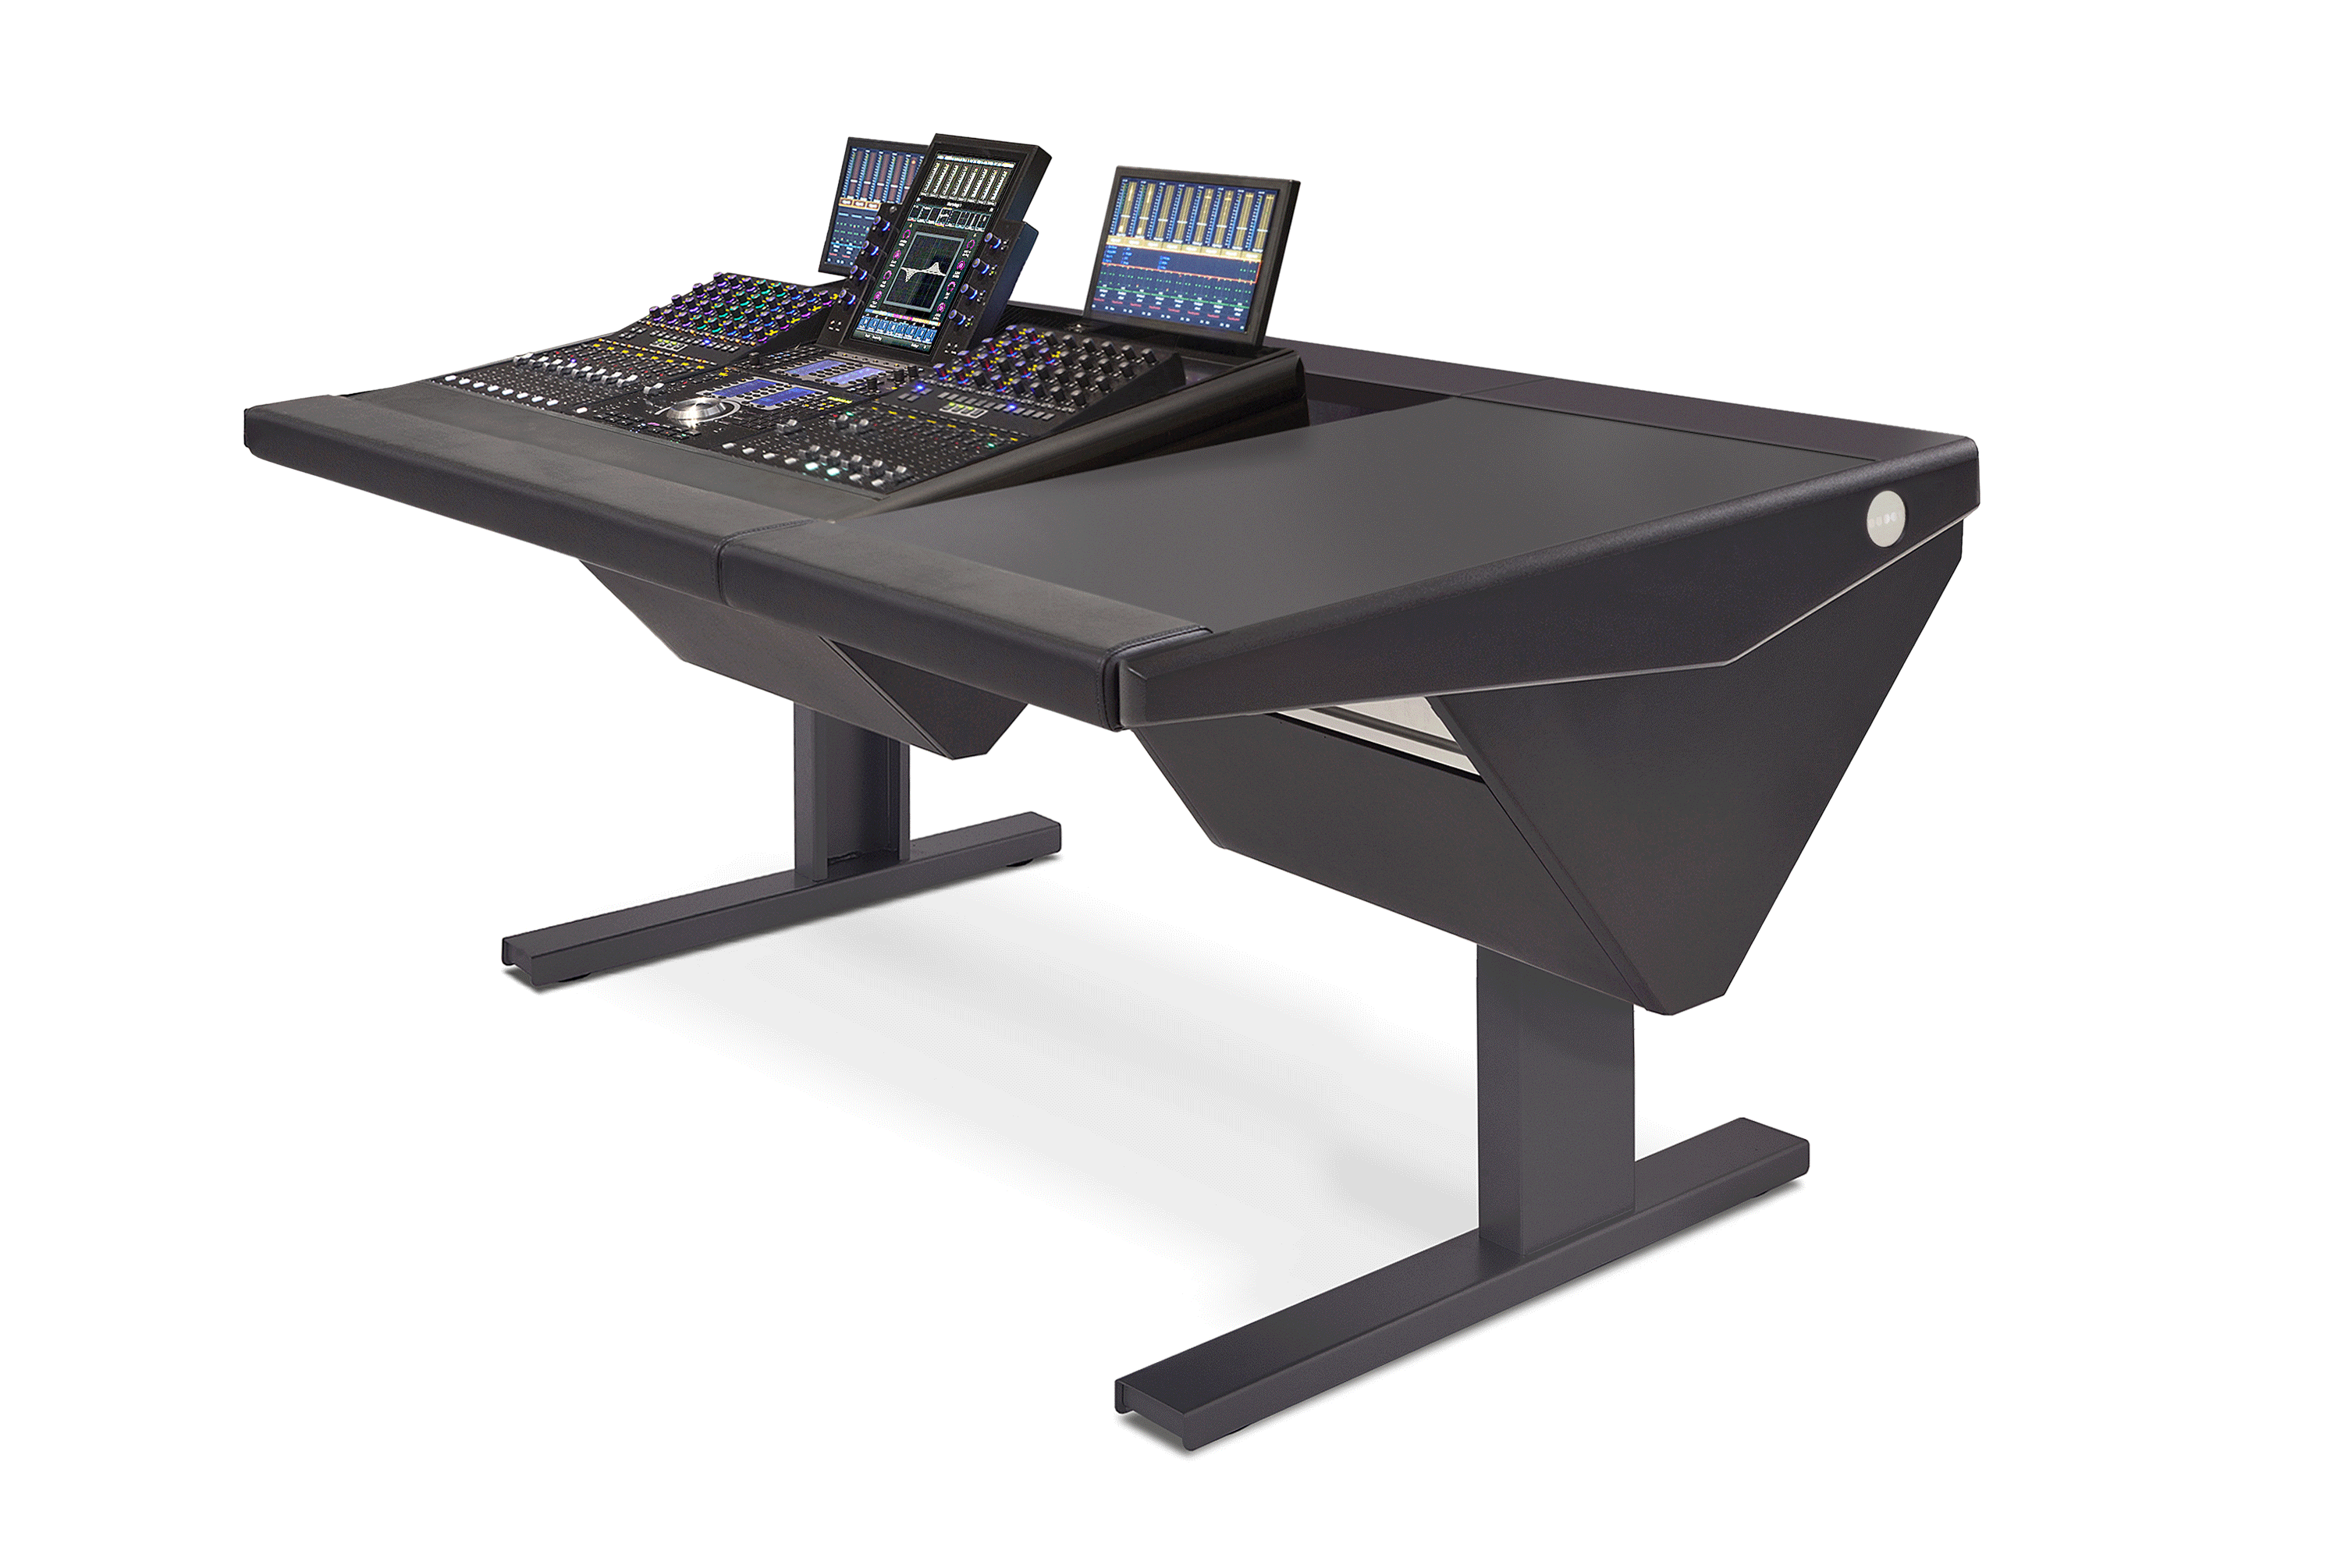 S4 - 3 Foot Wide Base System with Desk (R)